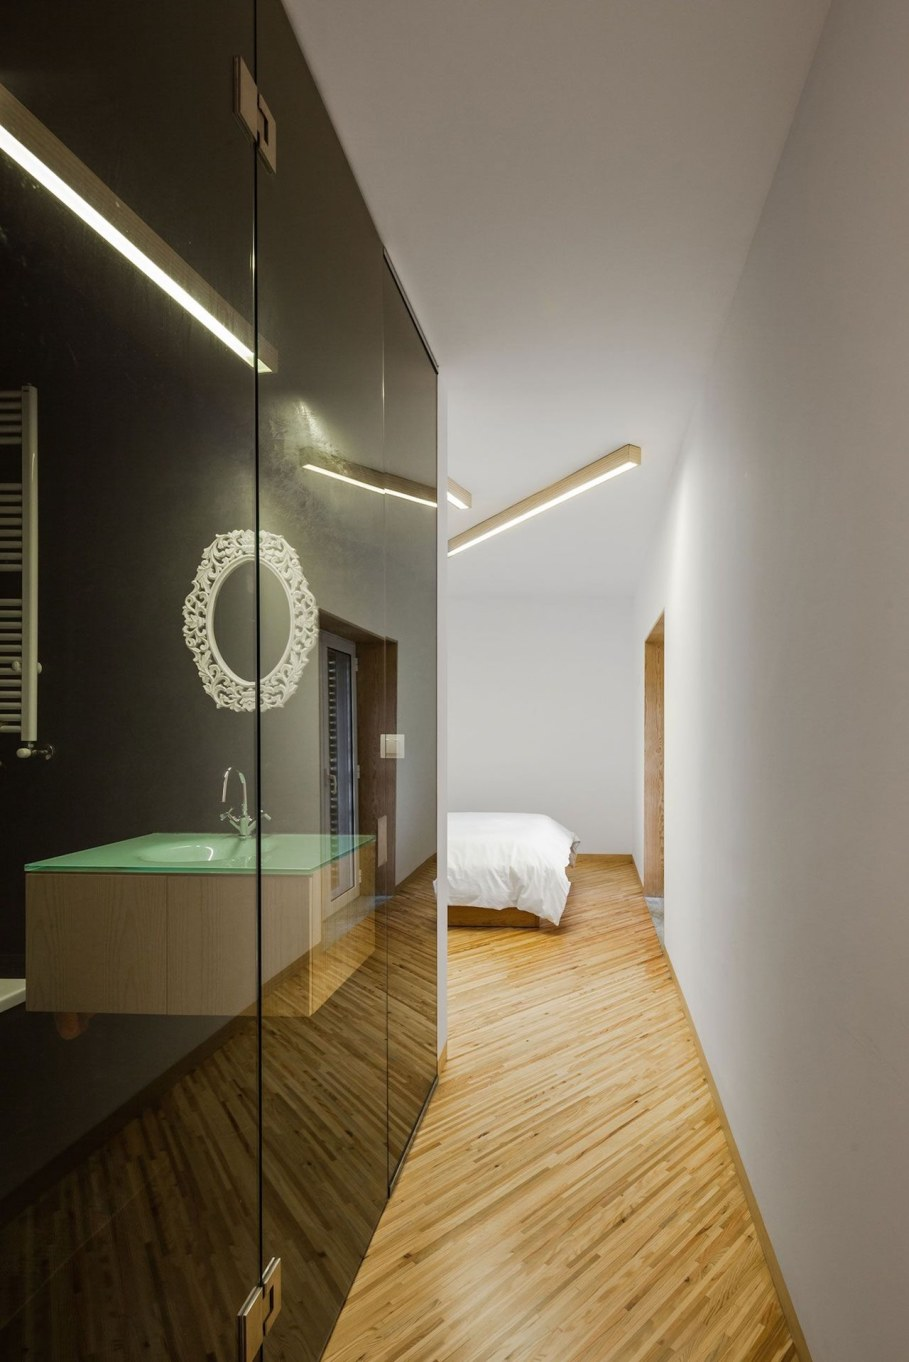 Silver Wood House By Ernesto Pereira - Bedroom